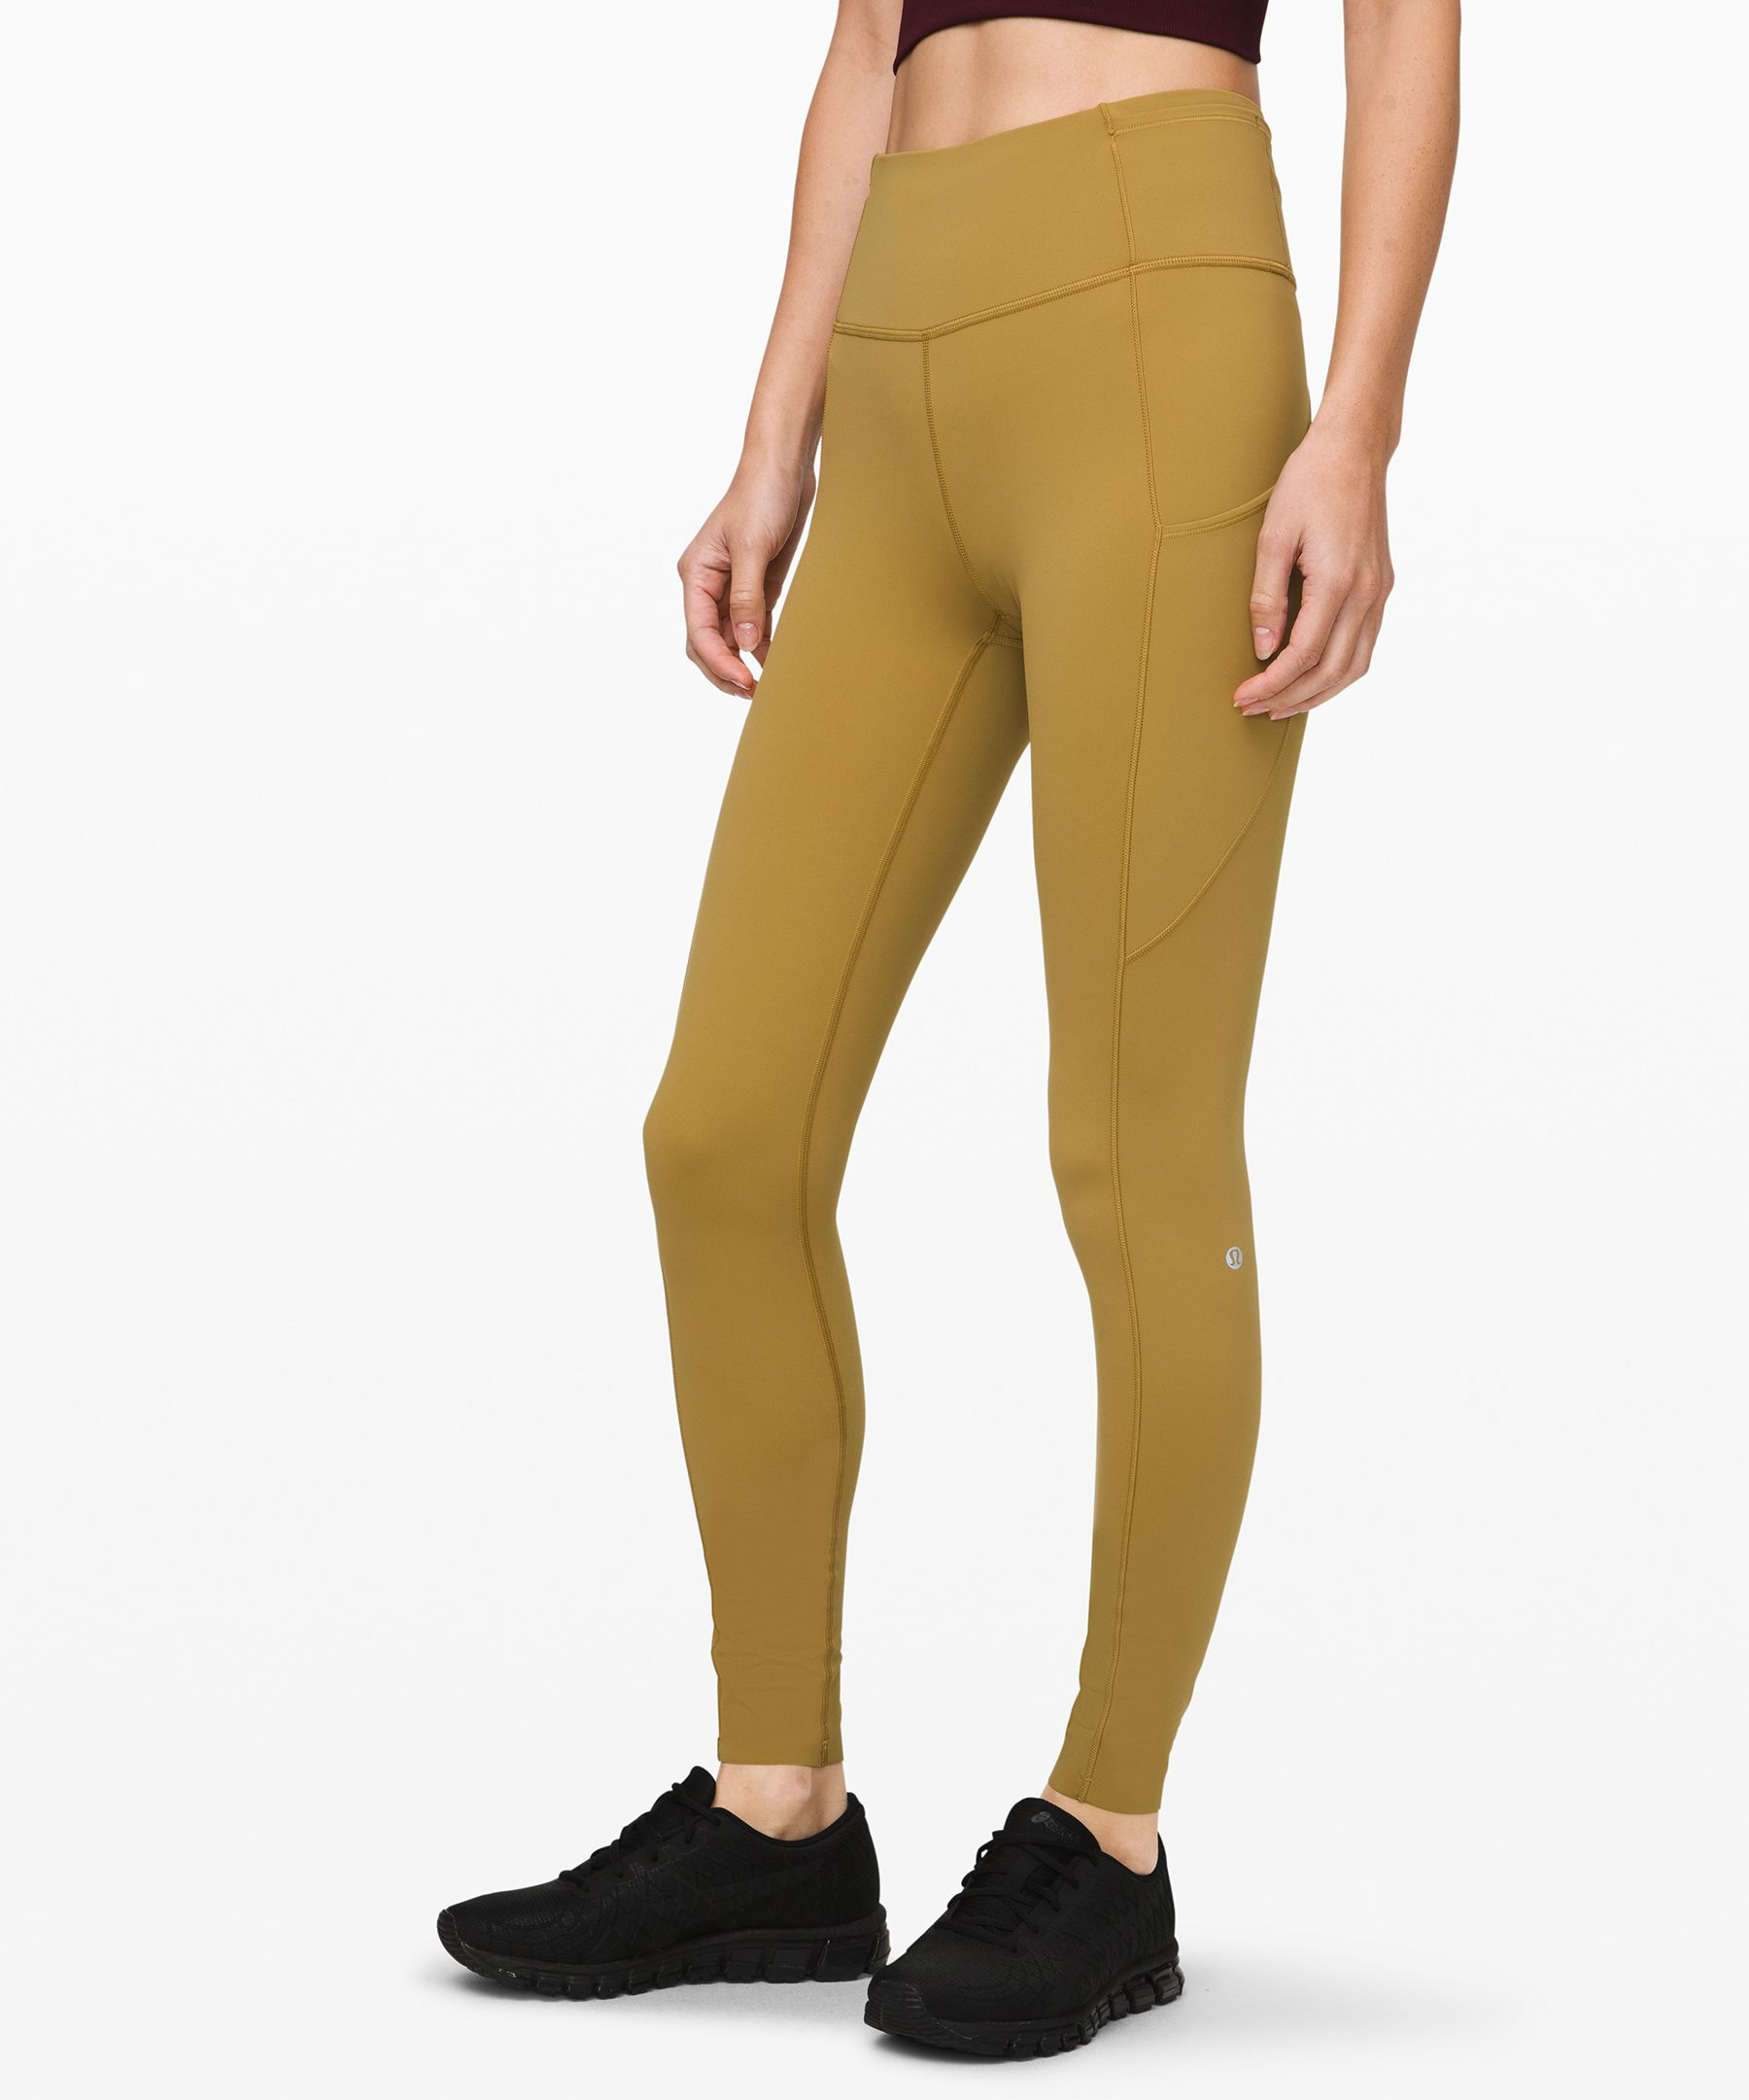 Fast and Free High-Rise Tight 28 *Non-Reflective Brushed Nulux